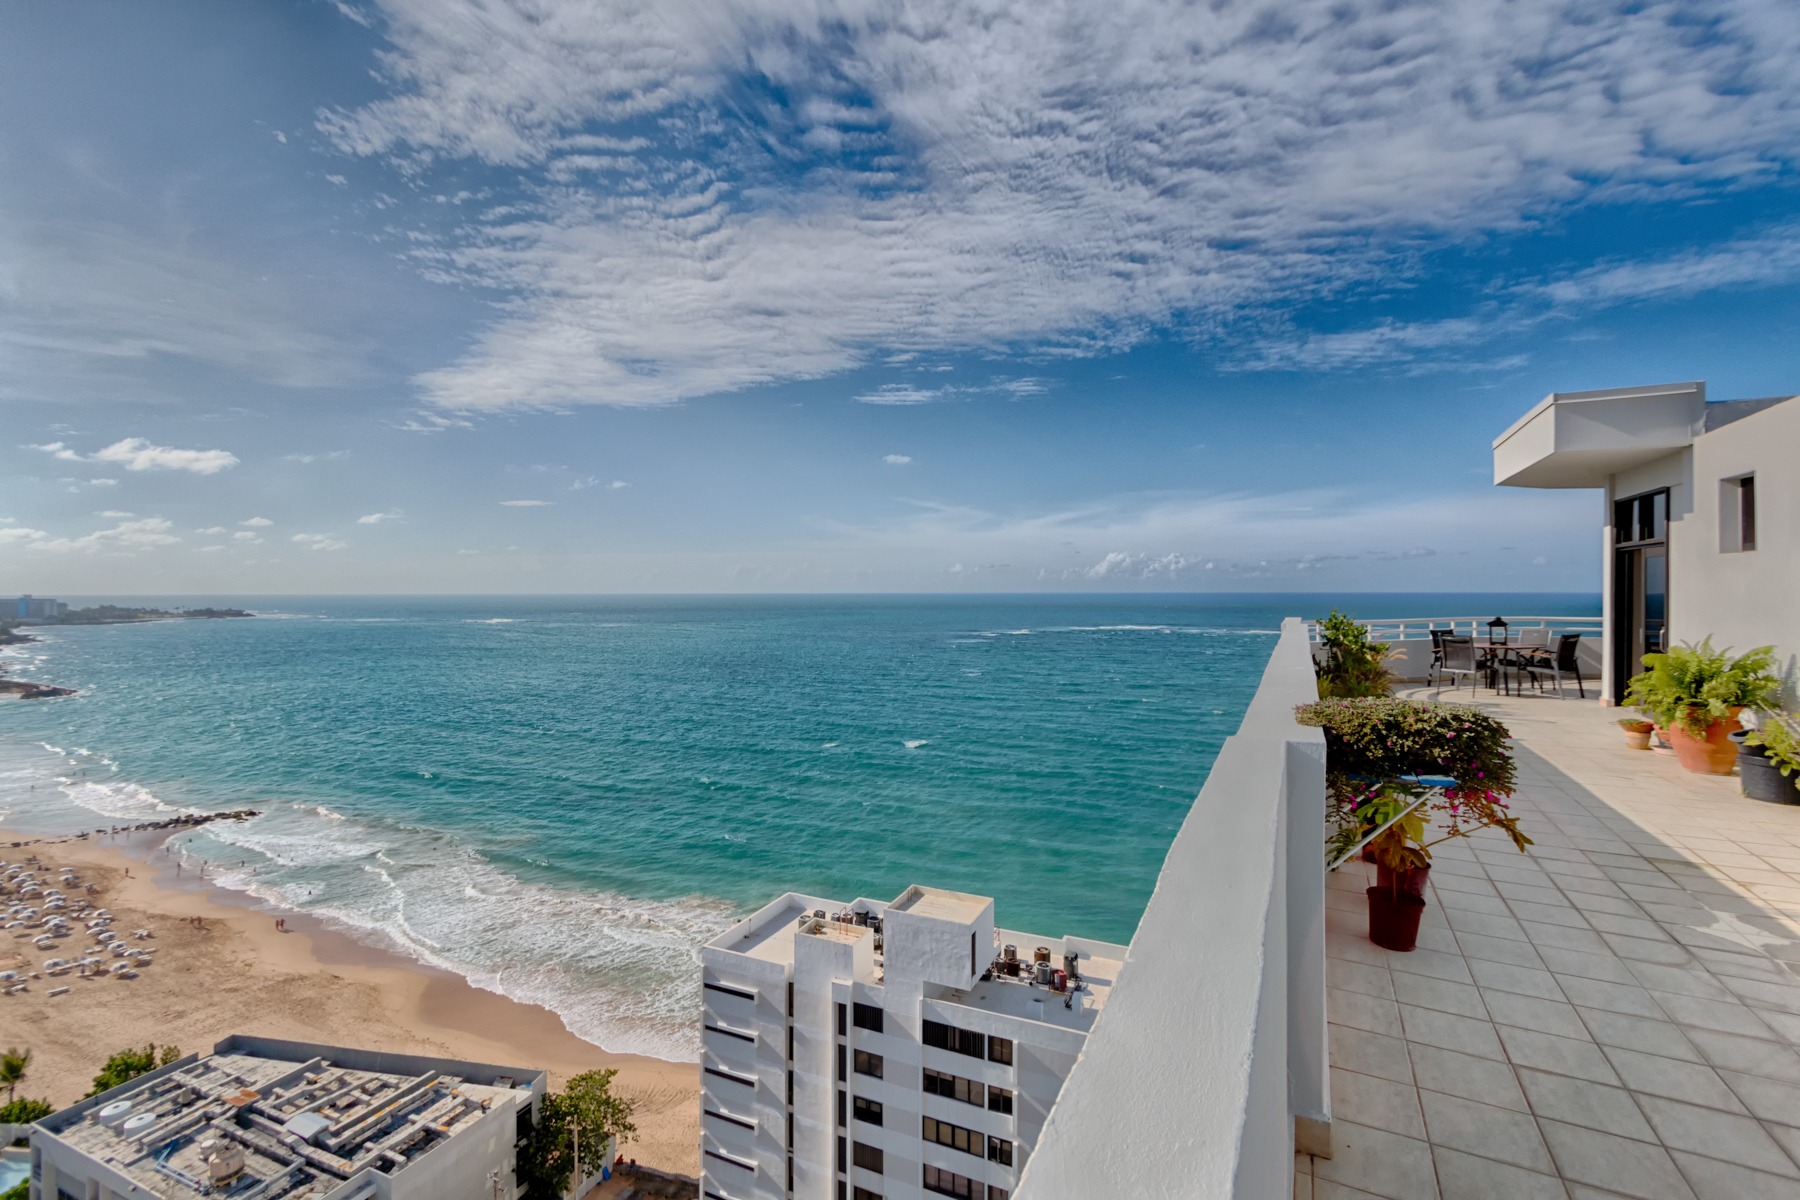 Additional photo for property listing at Candina Reef PH 2 Candina Street, Candina Reef Condominium San Juan, Puerto Rico 00907 Puerto Rico